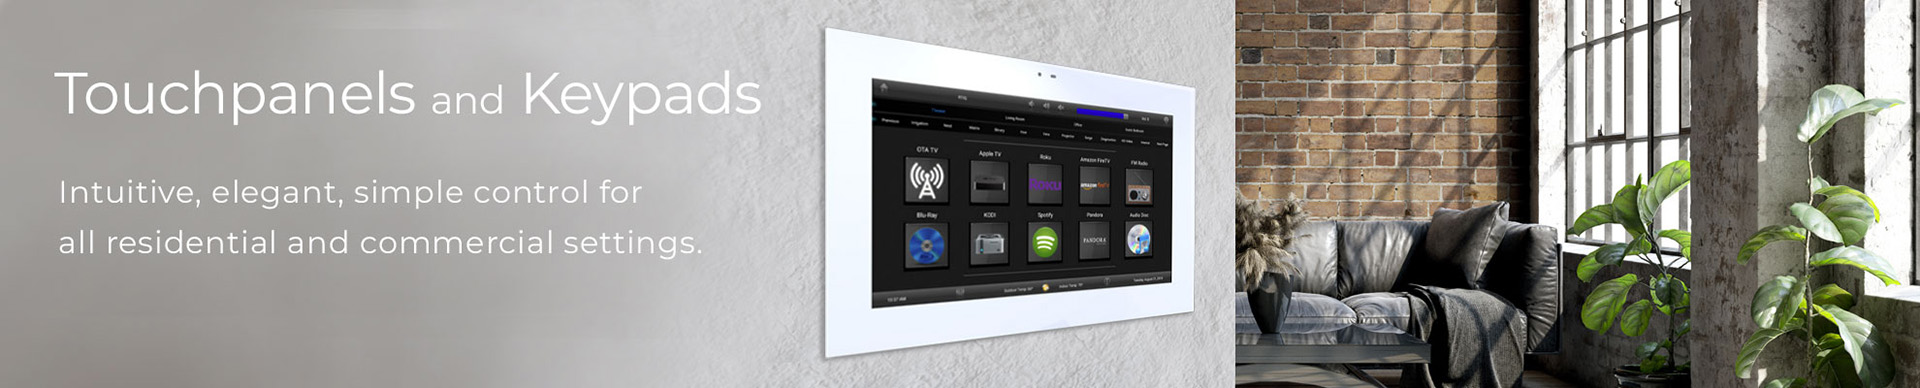 Touchpanels & Keypads